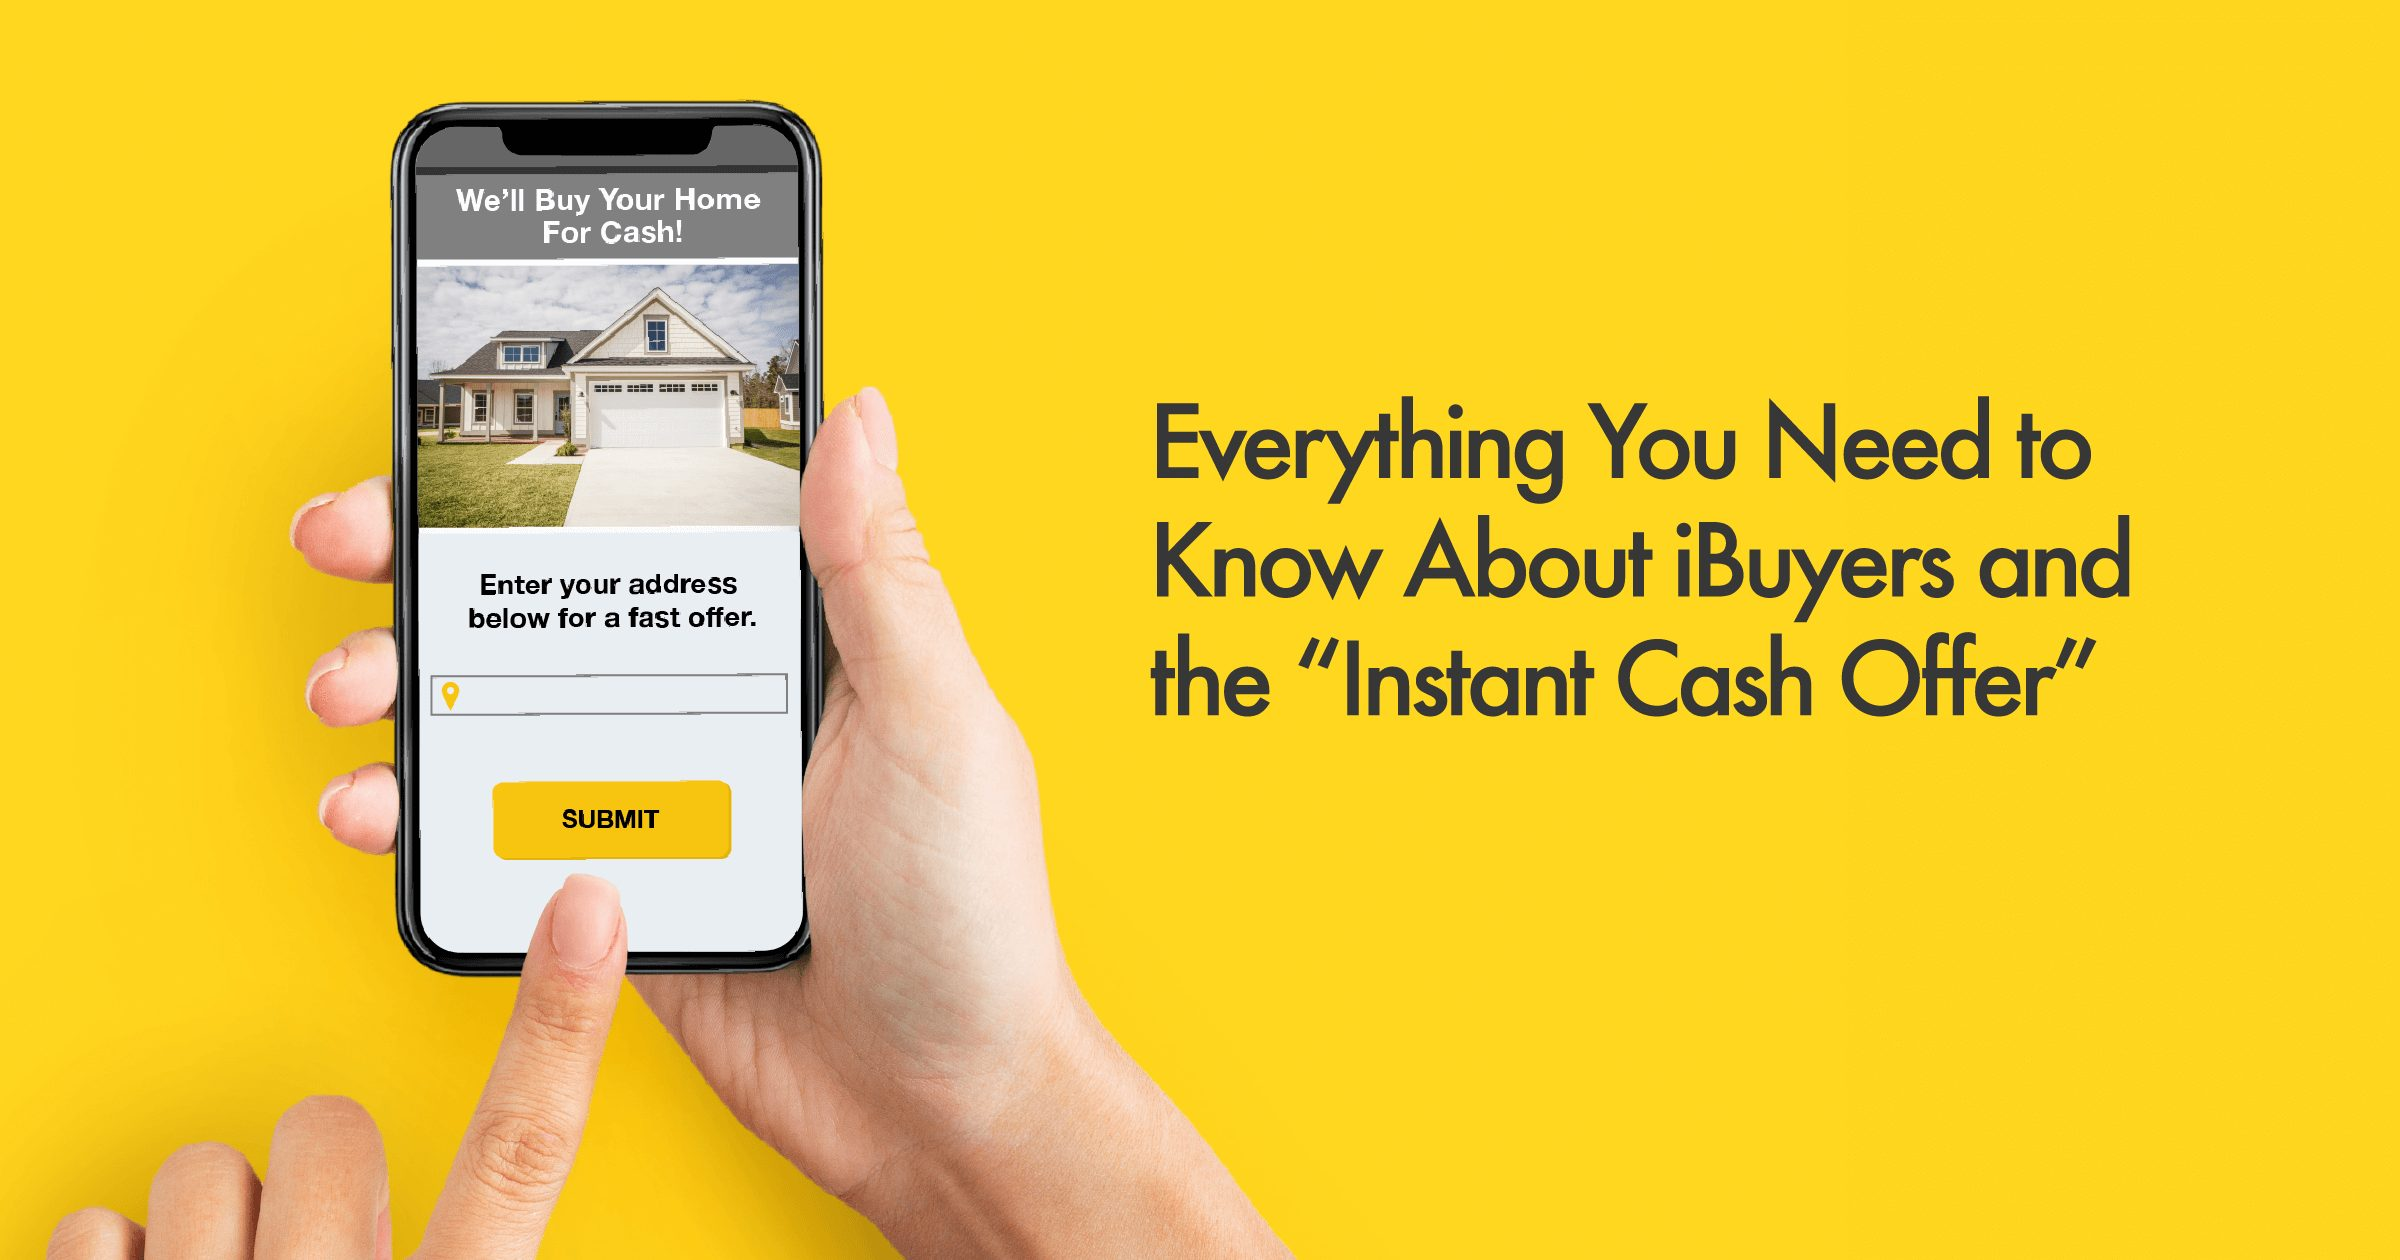 Instant Cash Offers Home Sellers Pros and Cons of IBuyers